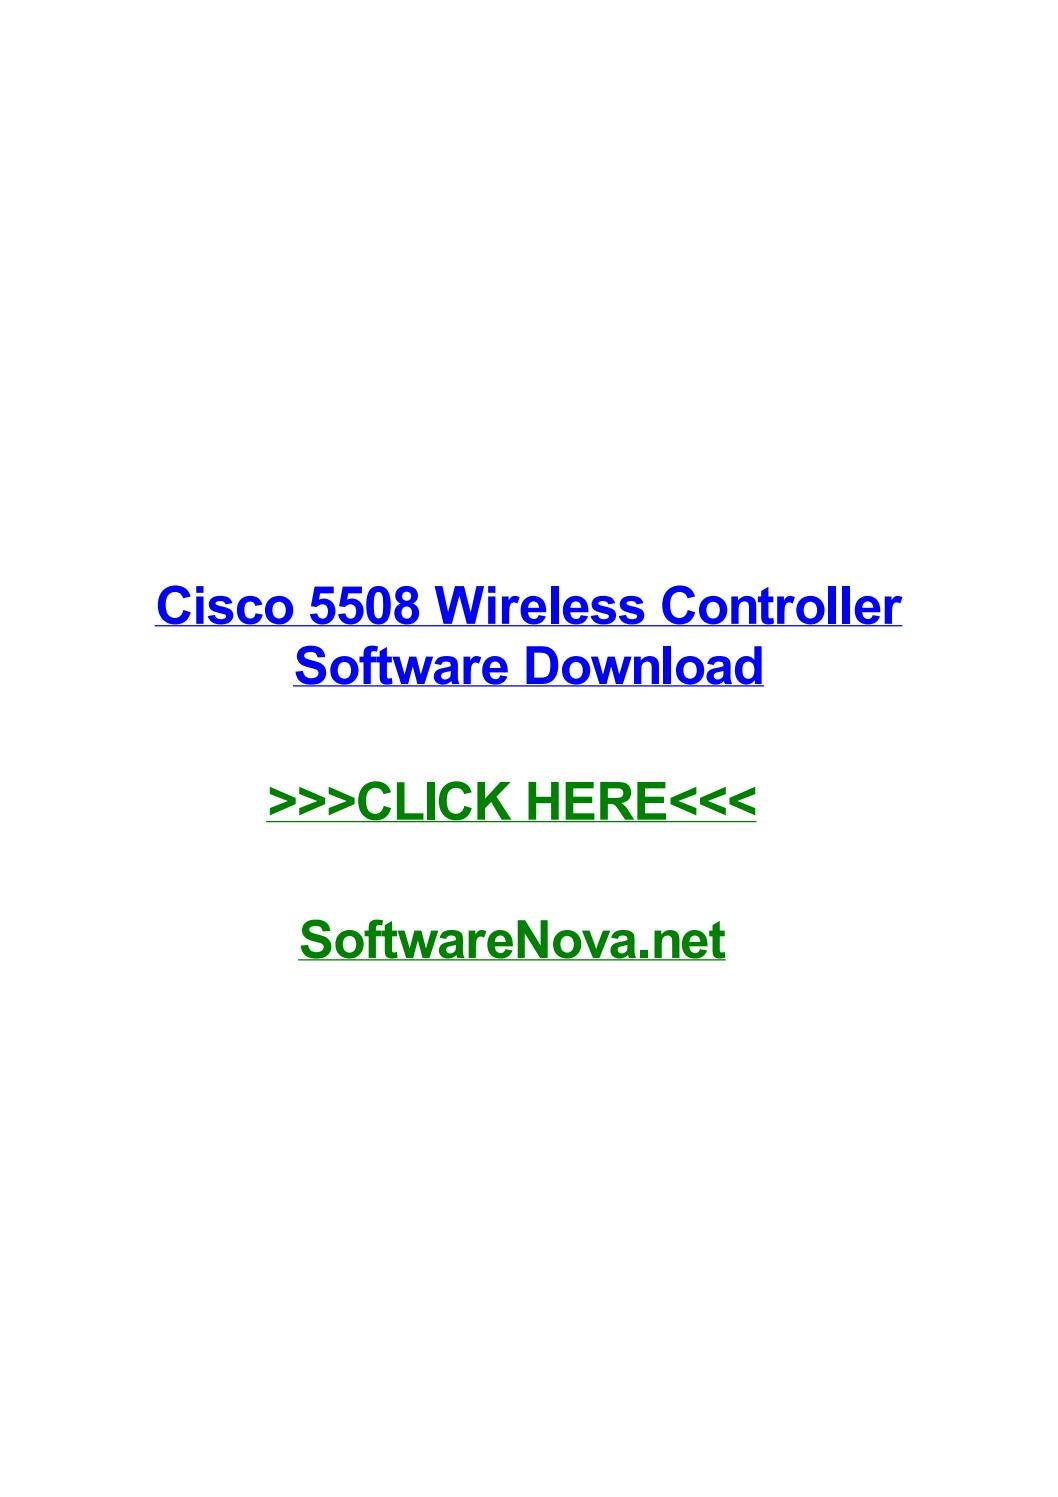 Cisco 5508 wireless controller software download by